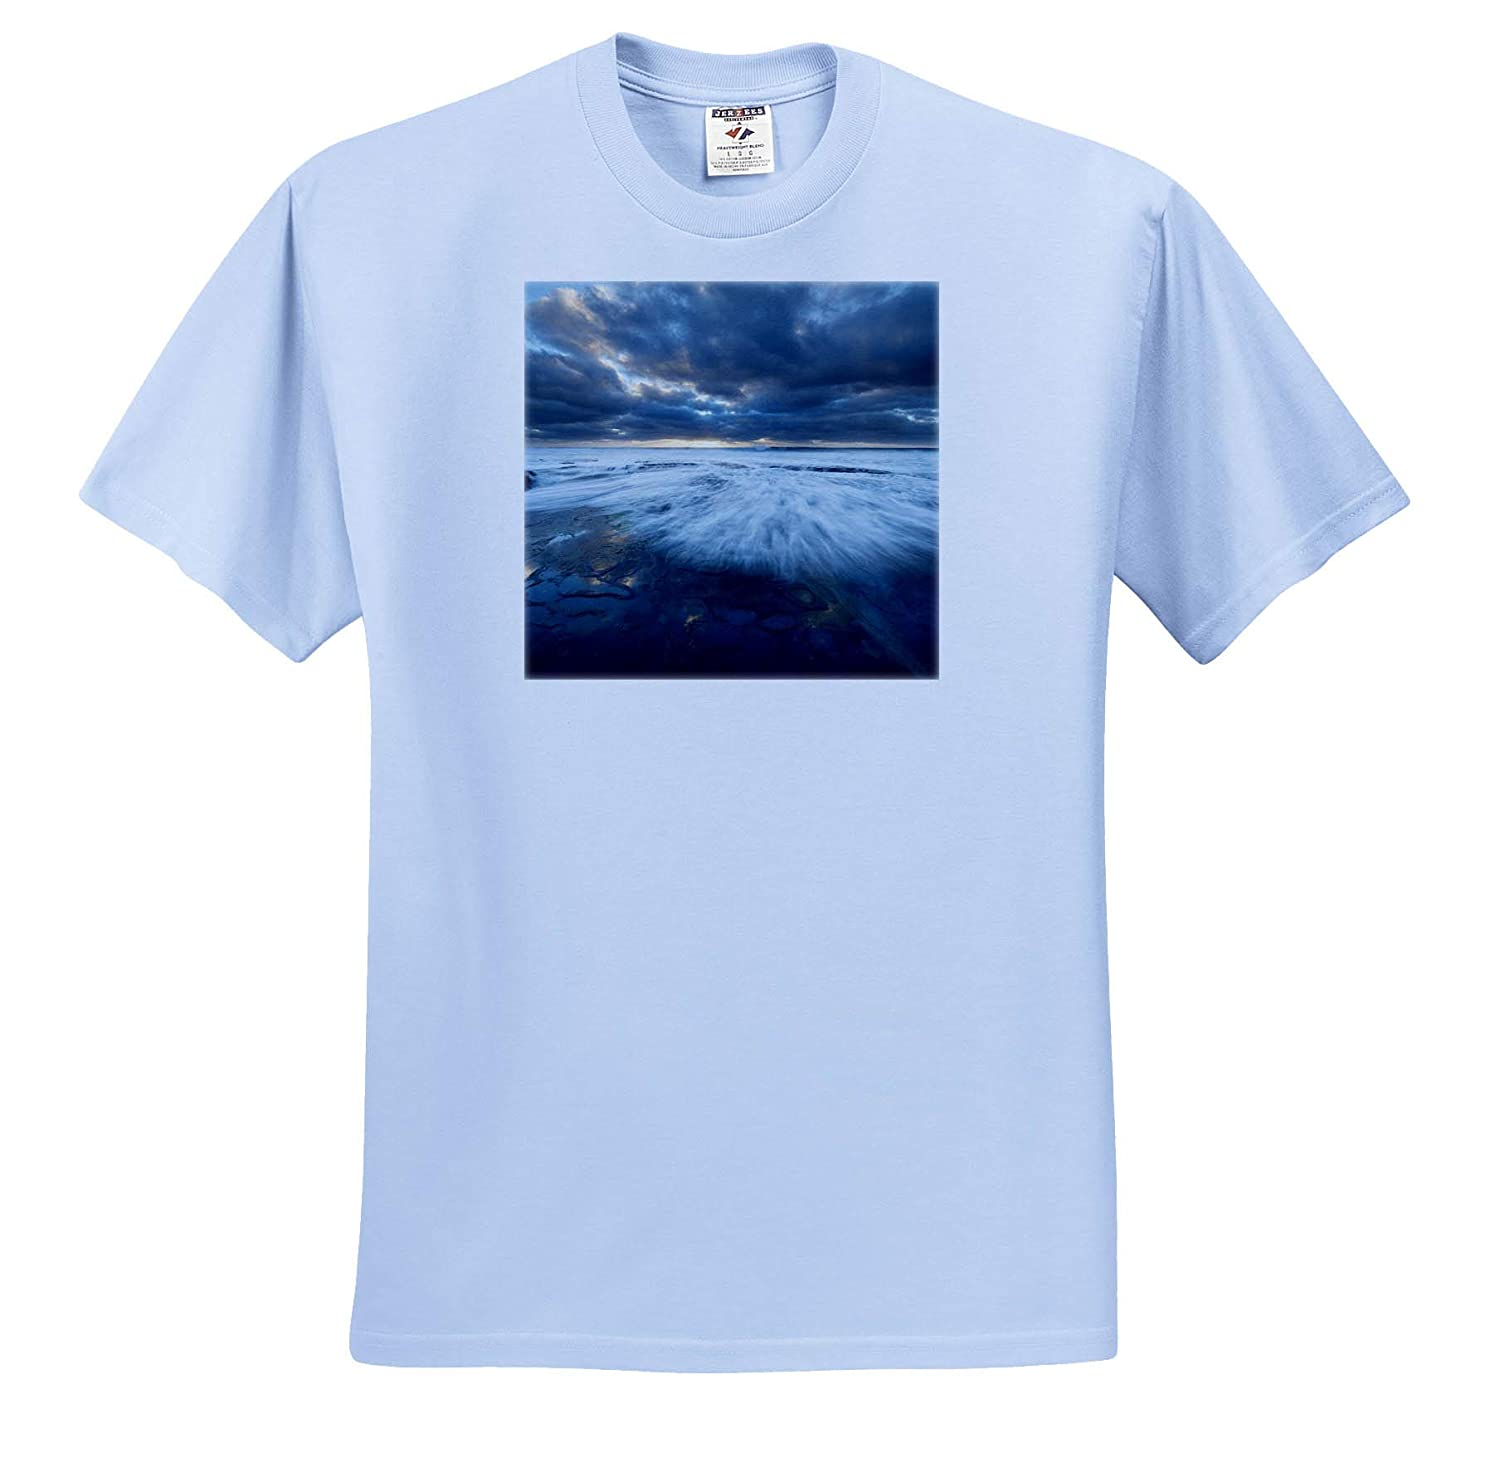 ts/_314642 USA - Adult T-Shirt XL La Jolla California 3dRose Danita Delimont Wave Washes Over Tide Pools Seascapes